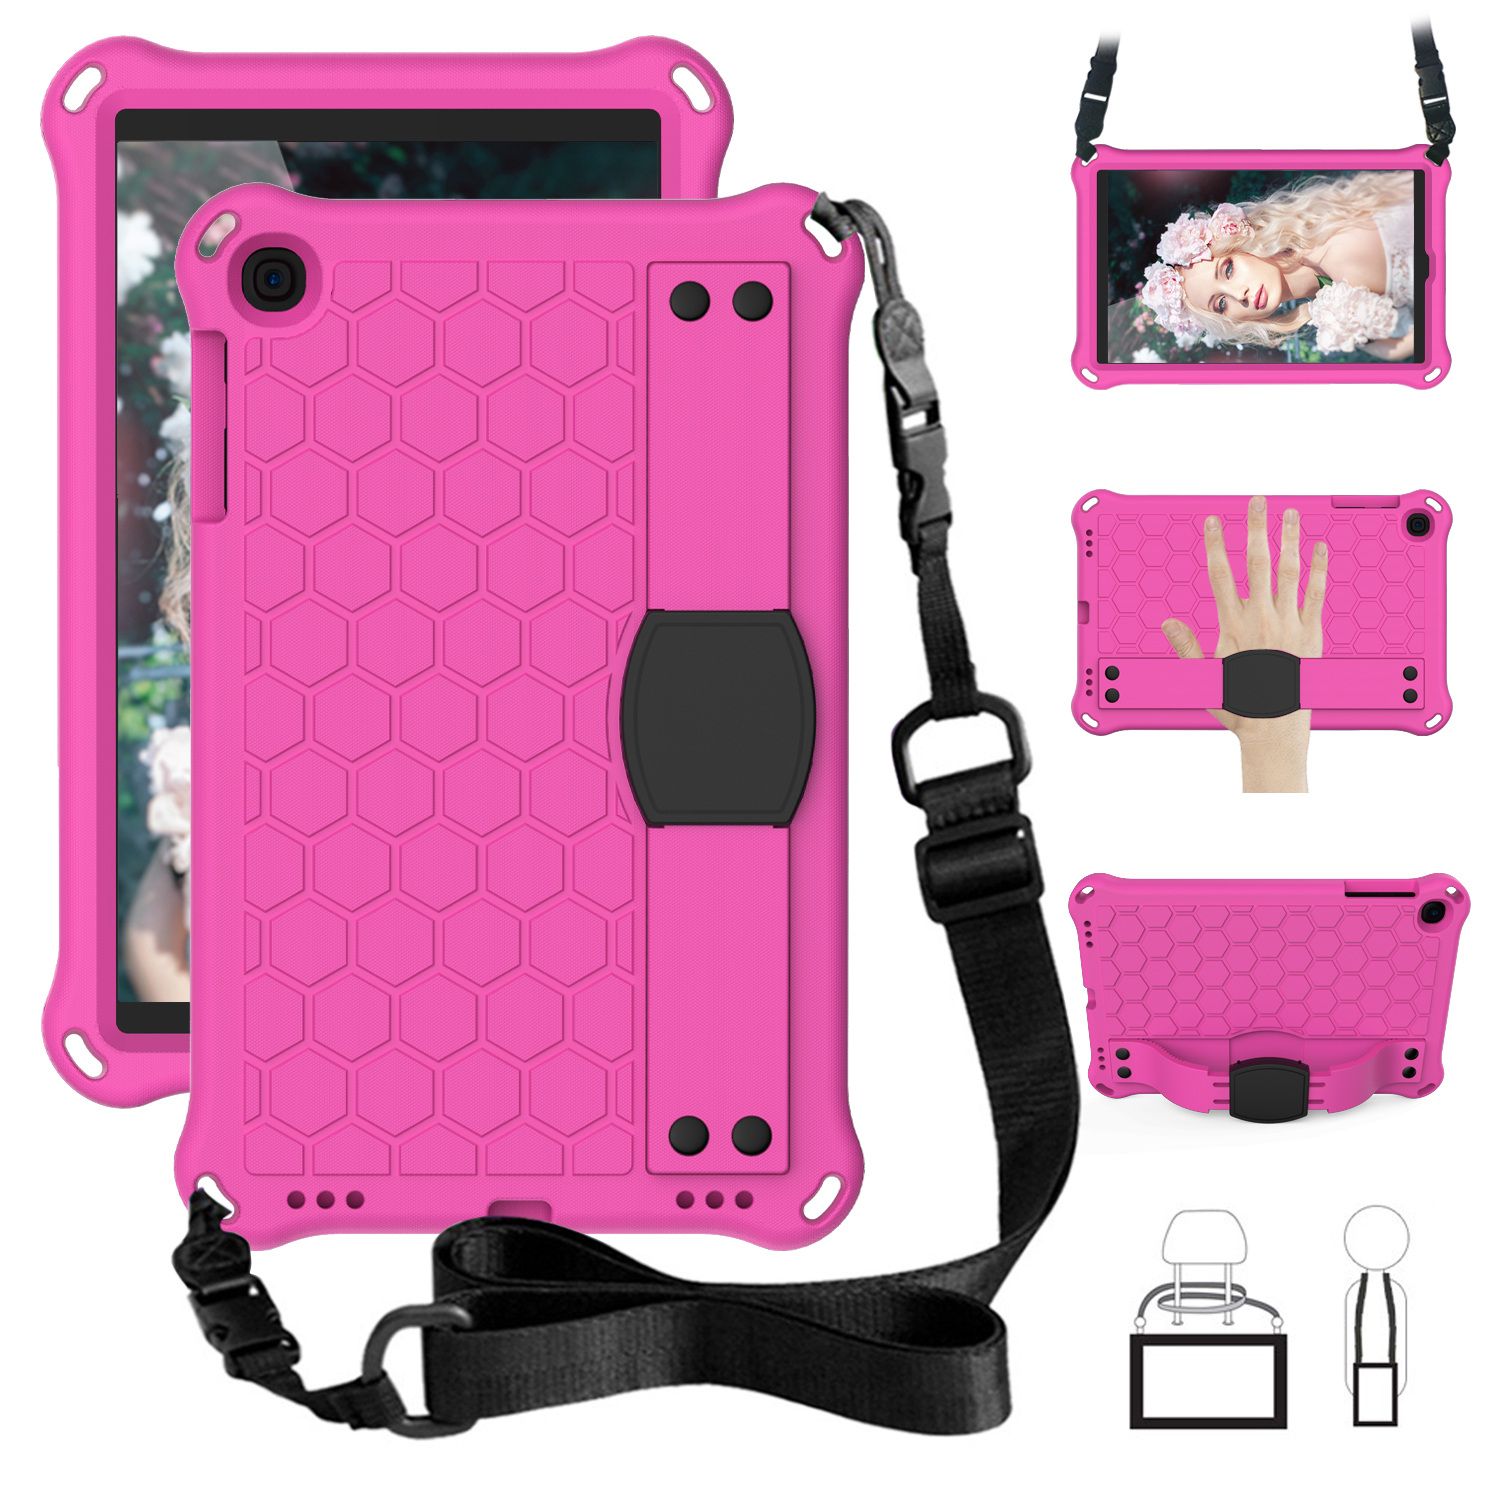 EVA Portable Kids Safe Foam Shockproof Tablet Stand Case For Samsung Galaxy Tab A 10.1 2019 SM-T510 SM-T515 T510 T515 Cover #S